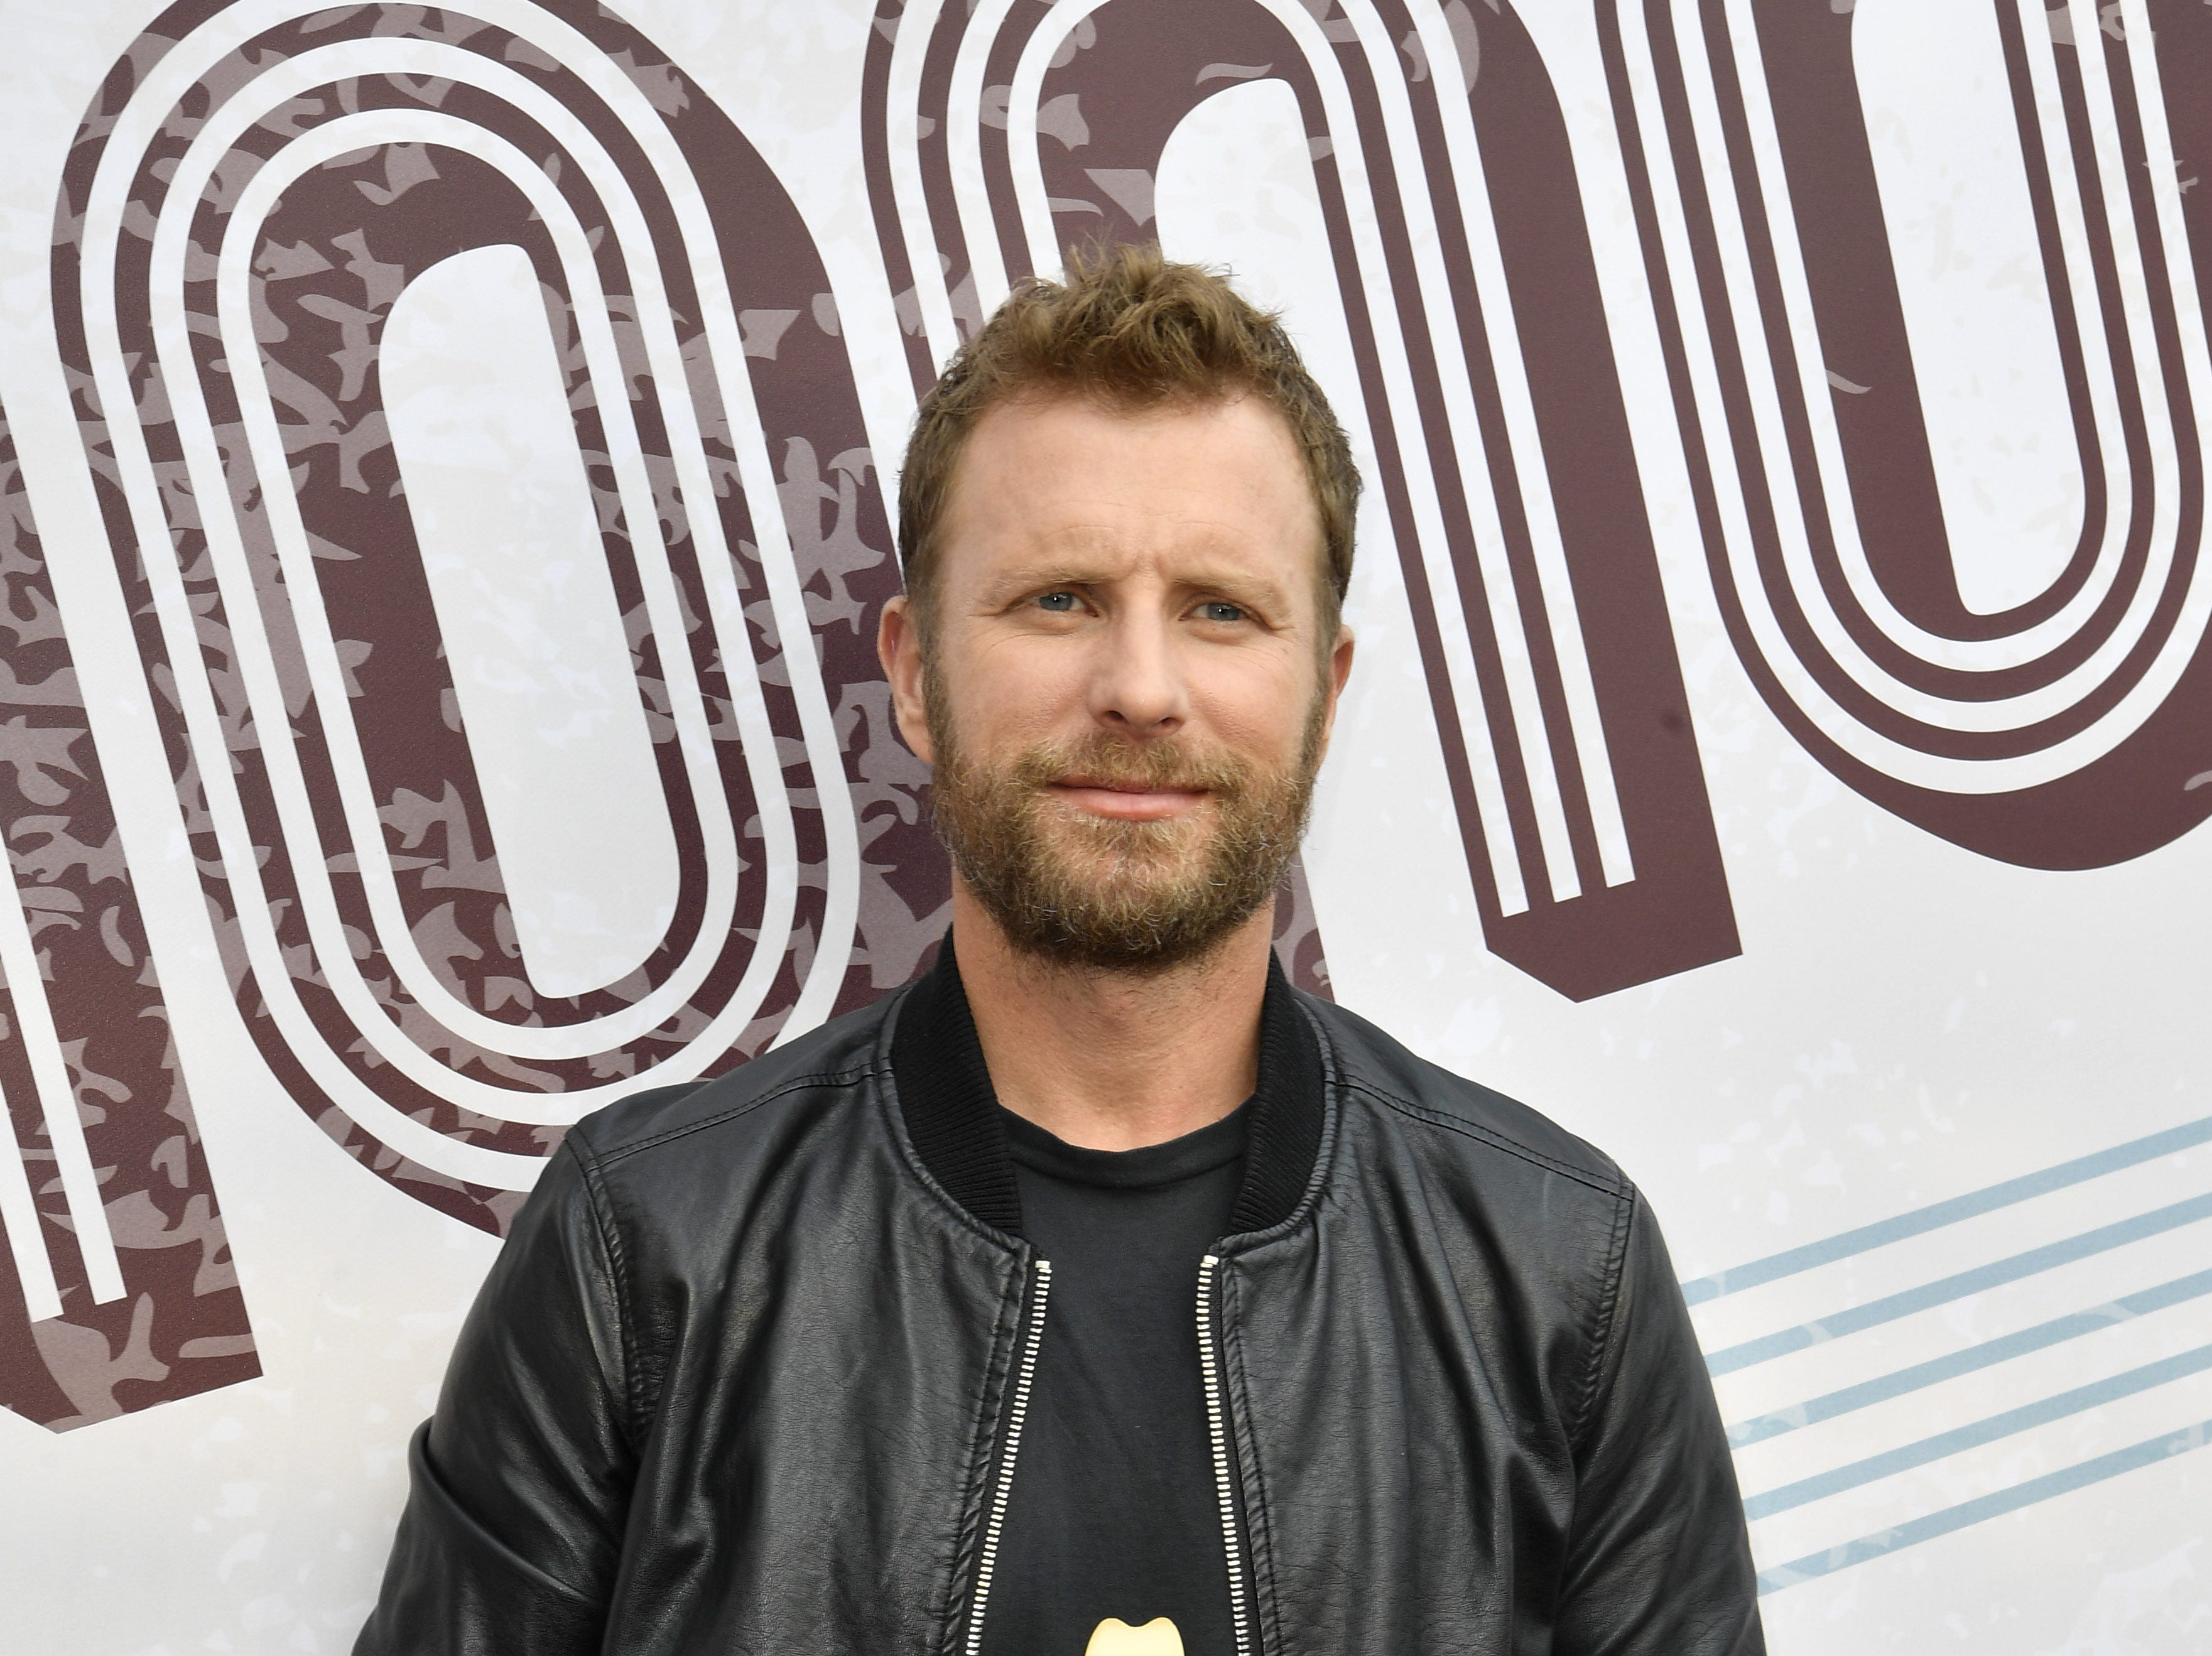 Dierks Bentley attends ACM Honors on Aug. 22, 2018, in Nashville.